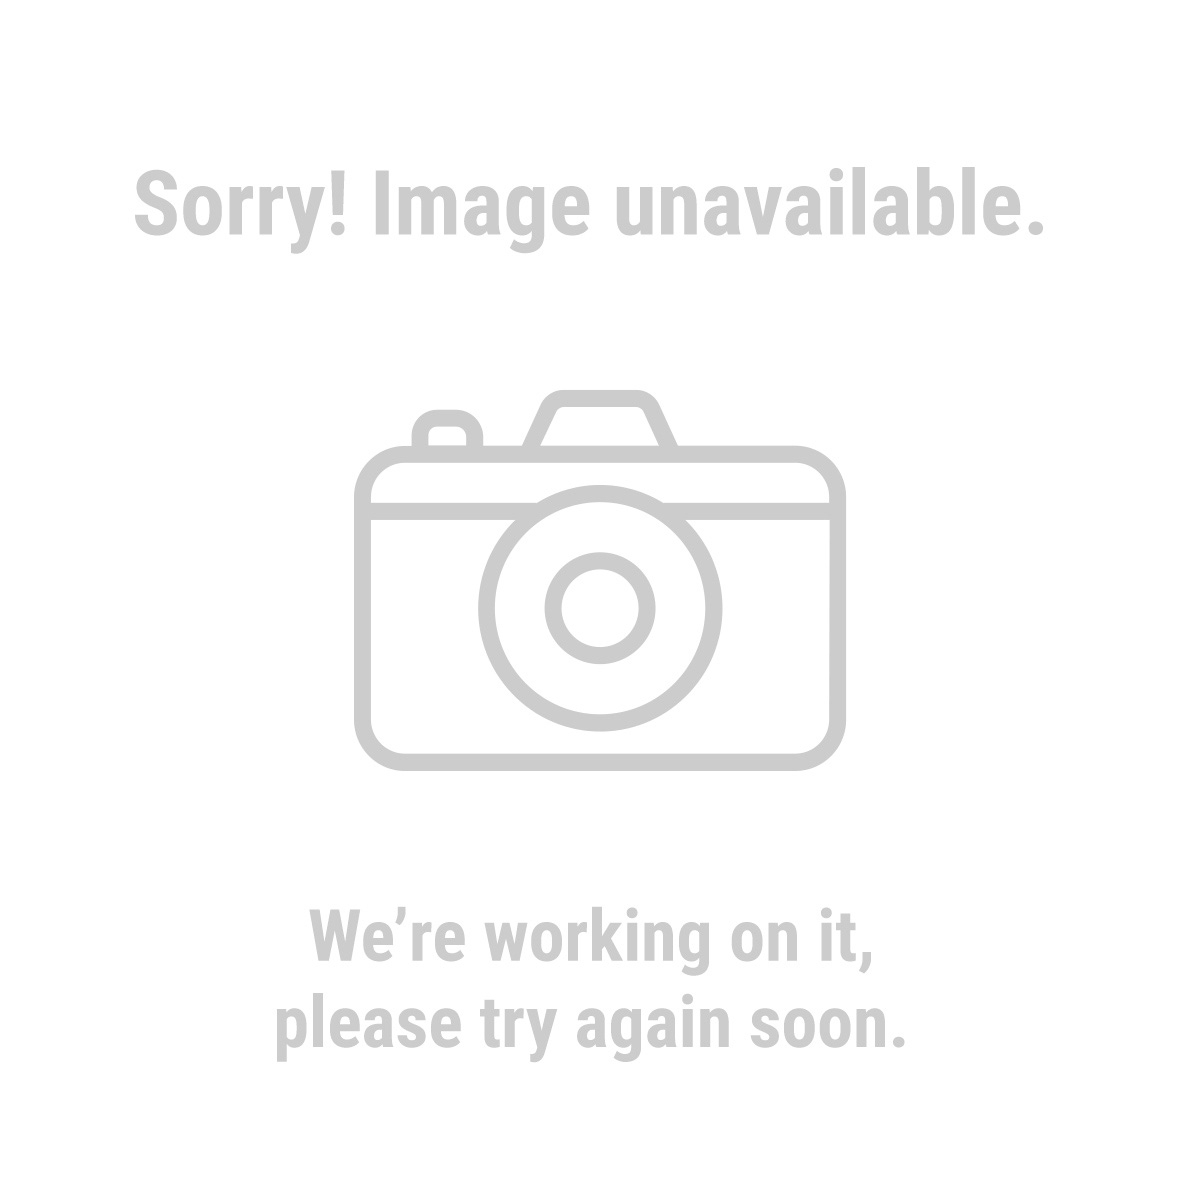 Garden Cart Wheels 20 Inch Pneumatic Spoked Garden Cart Wheels